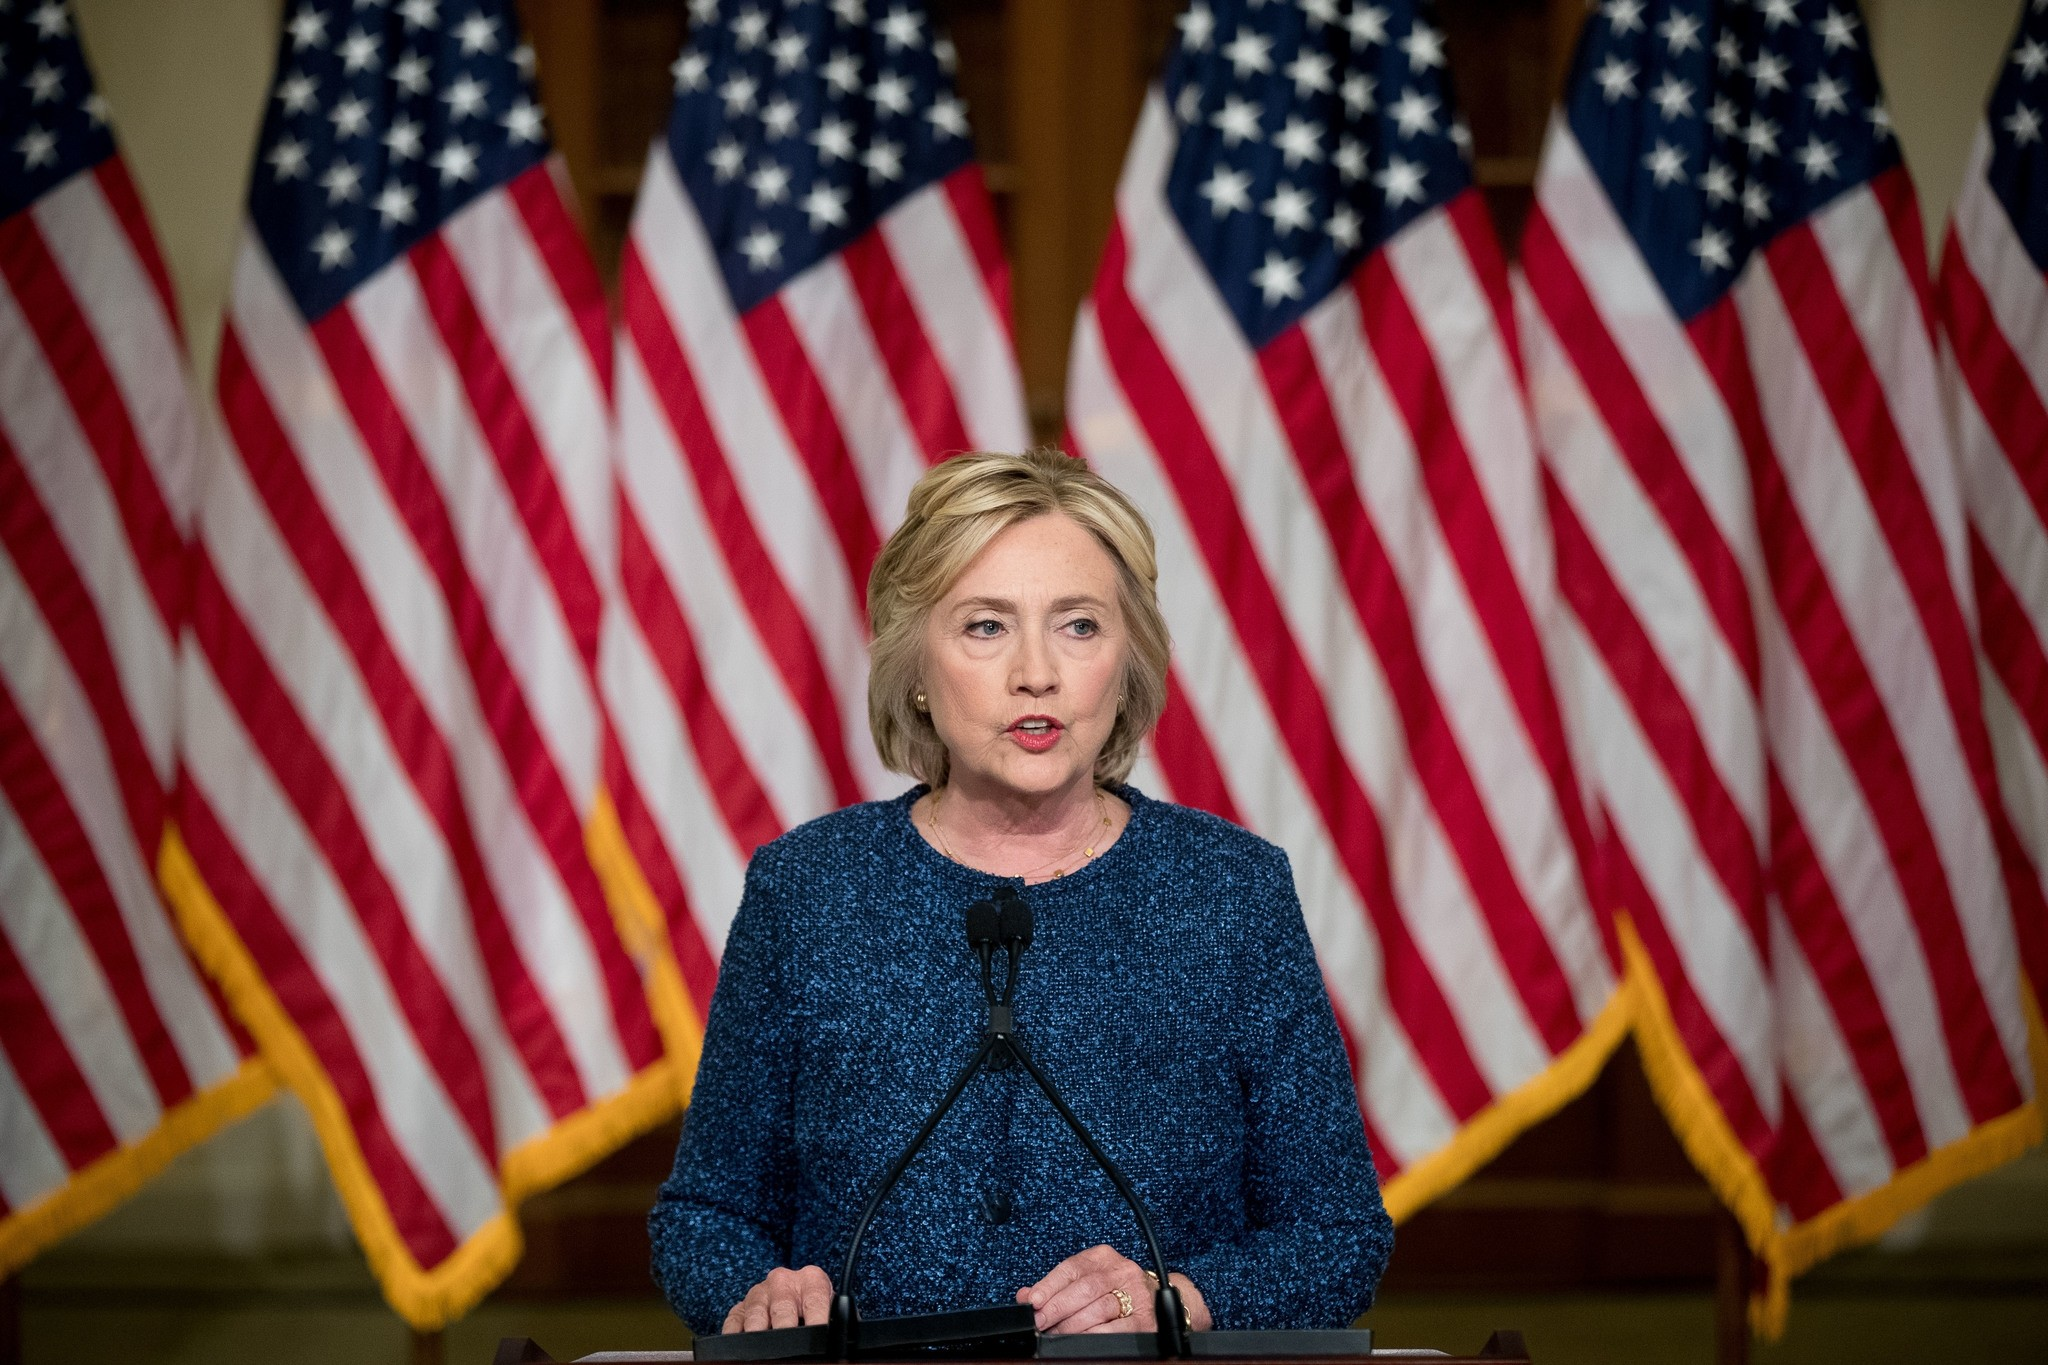 Hillary Clinton gives a statement after attending a National Security working session at the Historical Society Library, in New York, Sept. 9, 2016. (AP Photo)